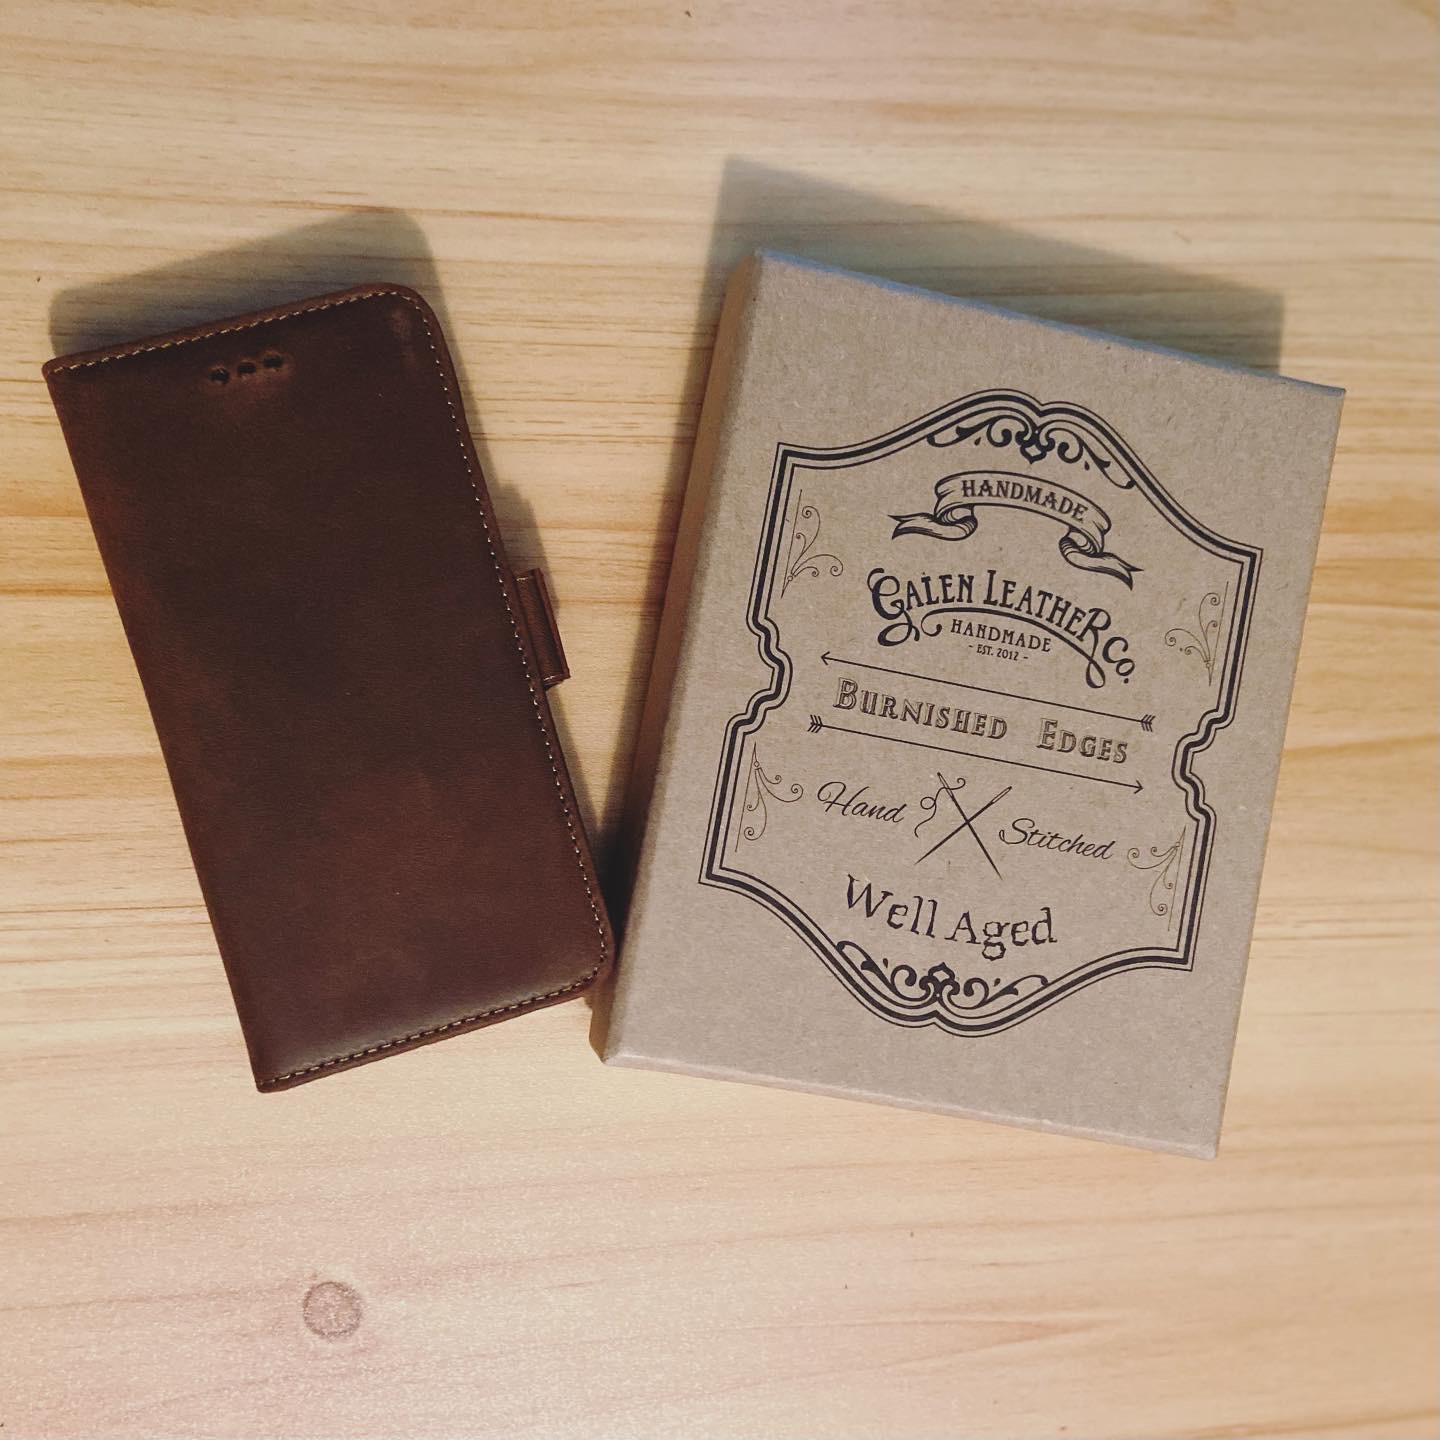 Galen leather brown leather detachable iPhone wallet case with the packaging box on the side